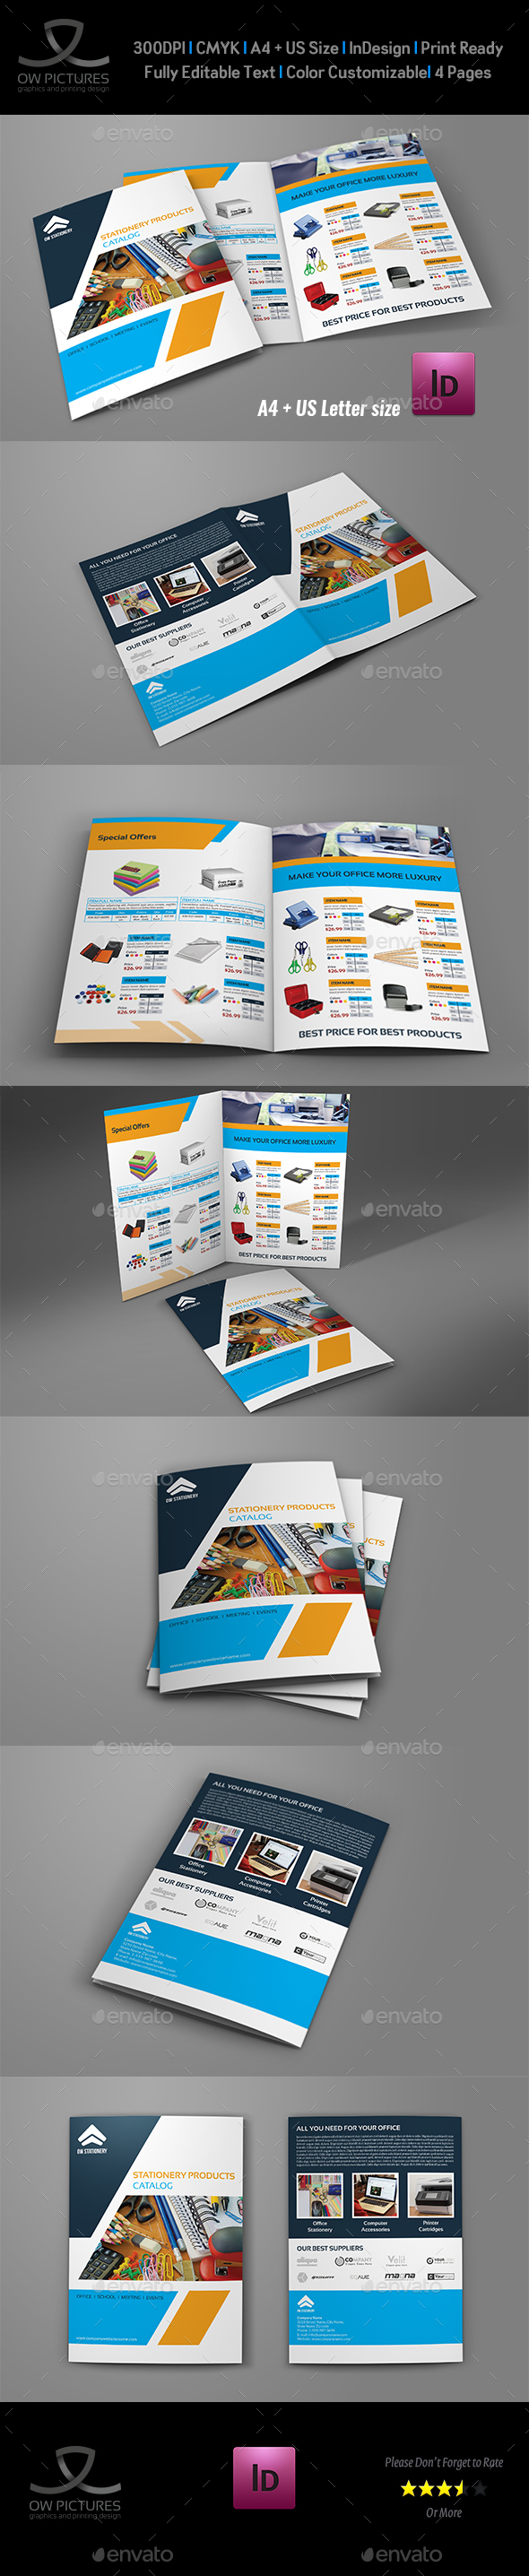 Stationery Products Catalog Bi- Fold Brochure Template - Catalogs Brochures